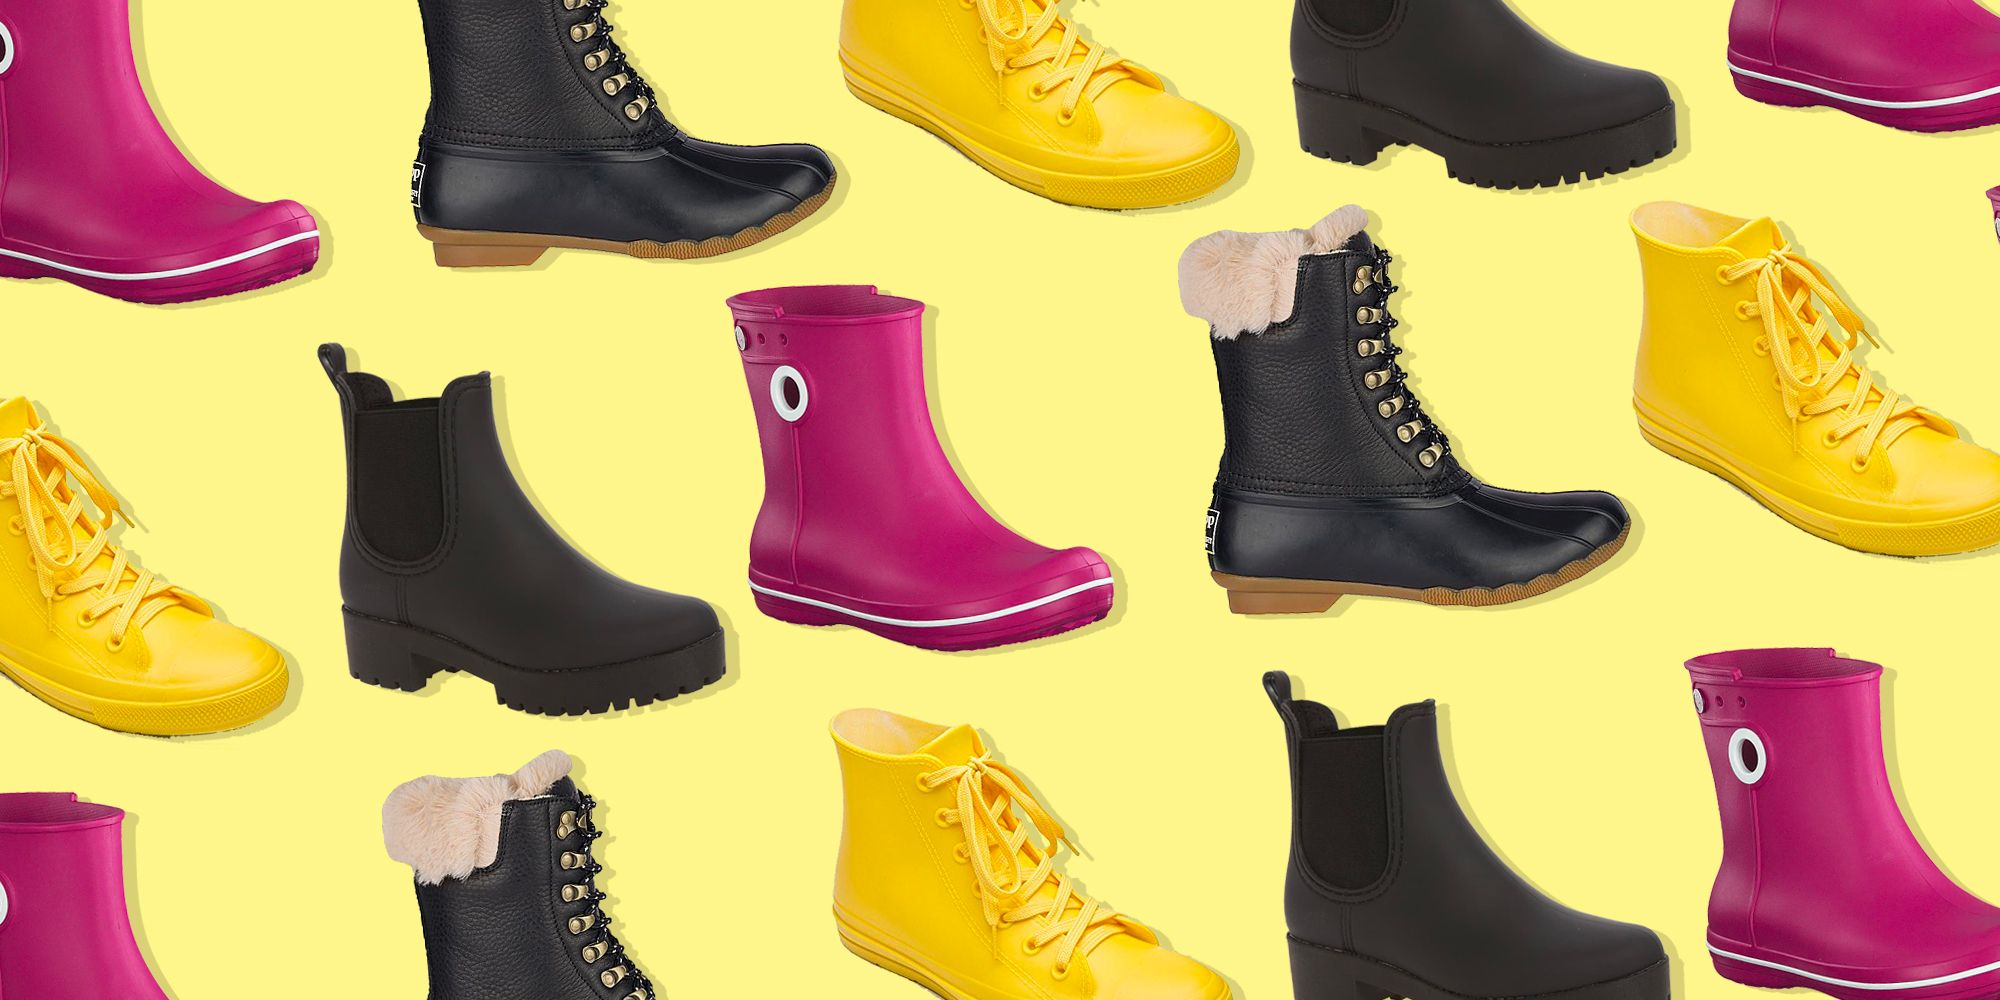 vibrant styles and rain boots